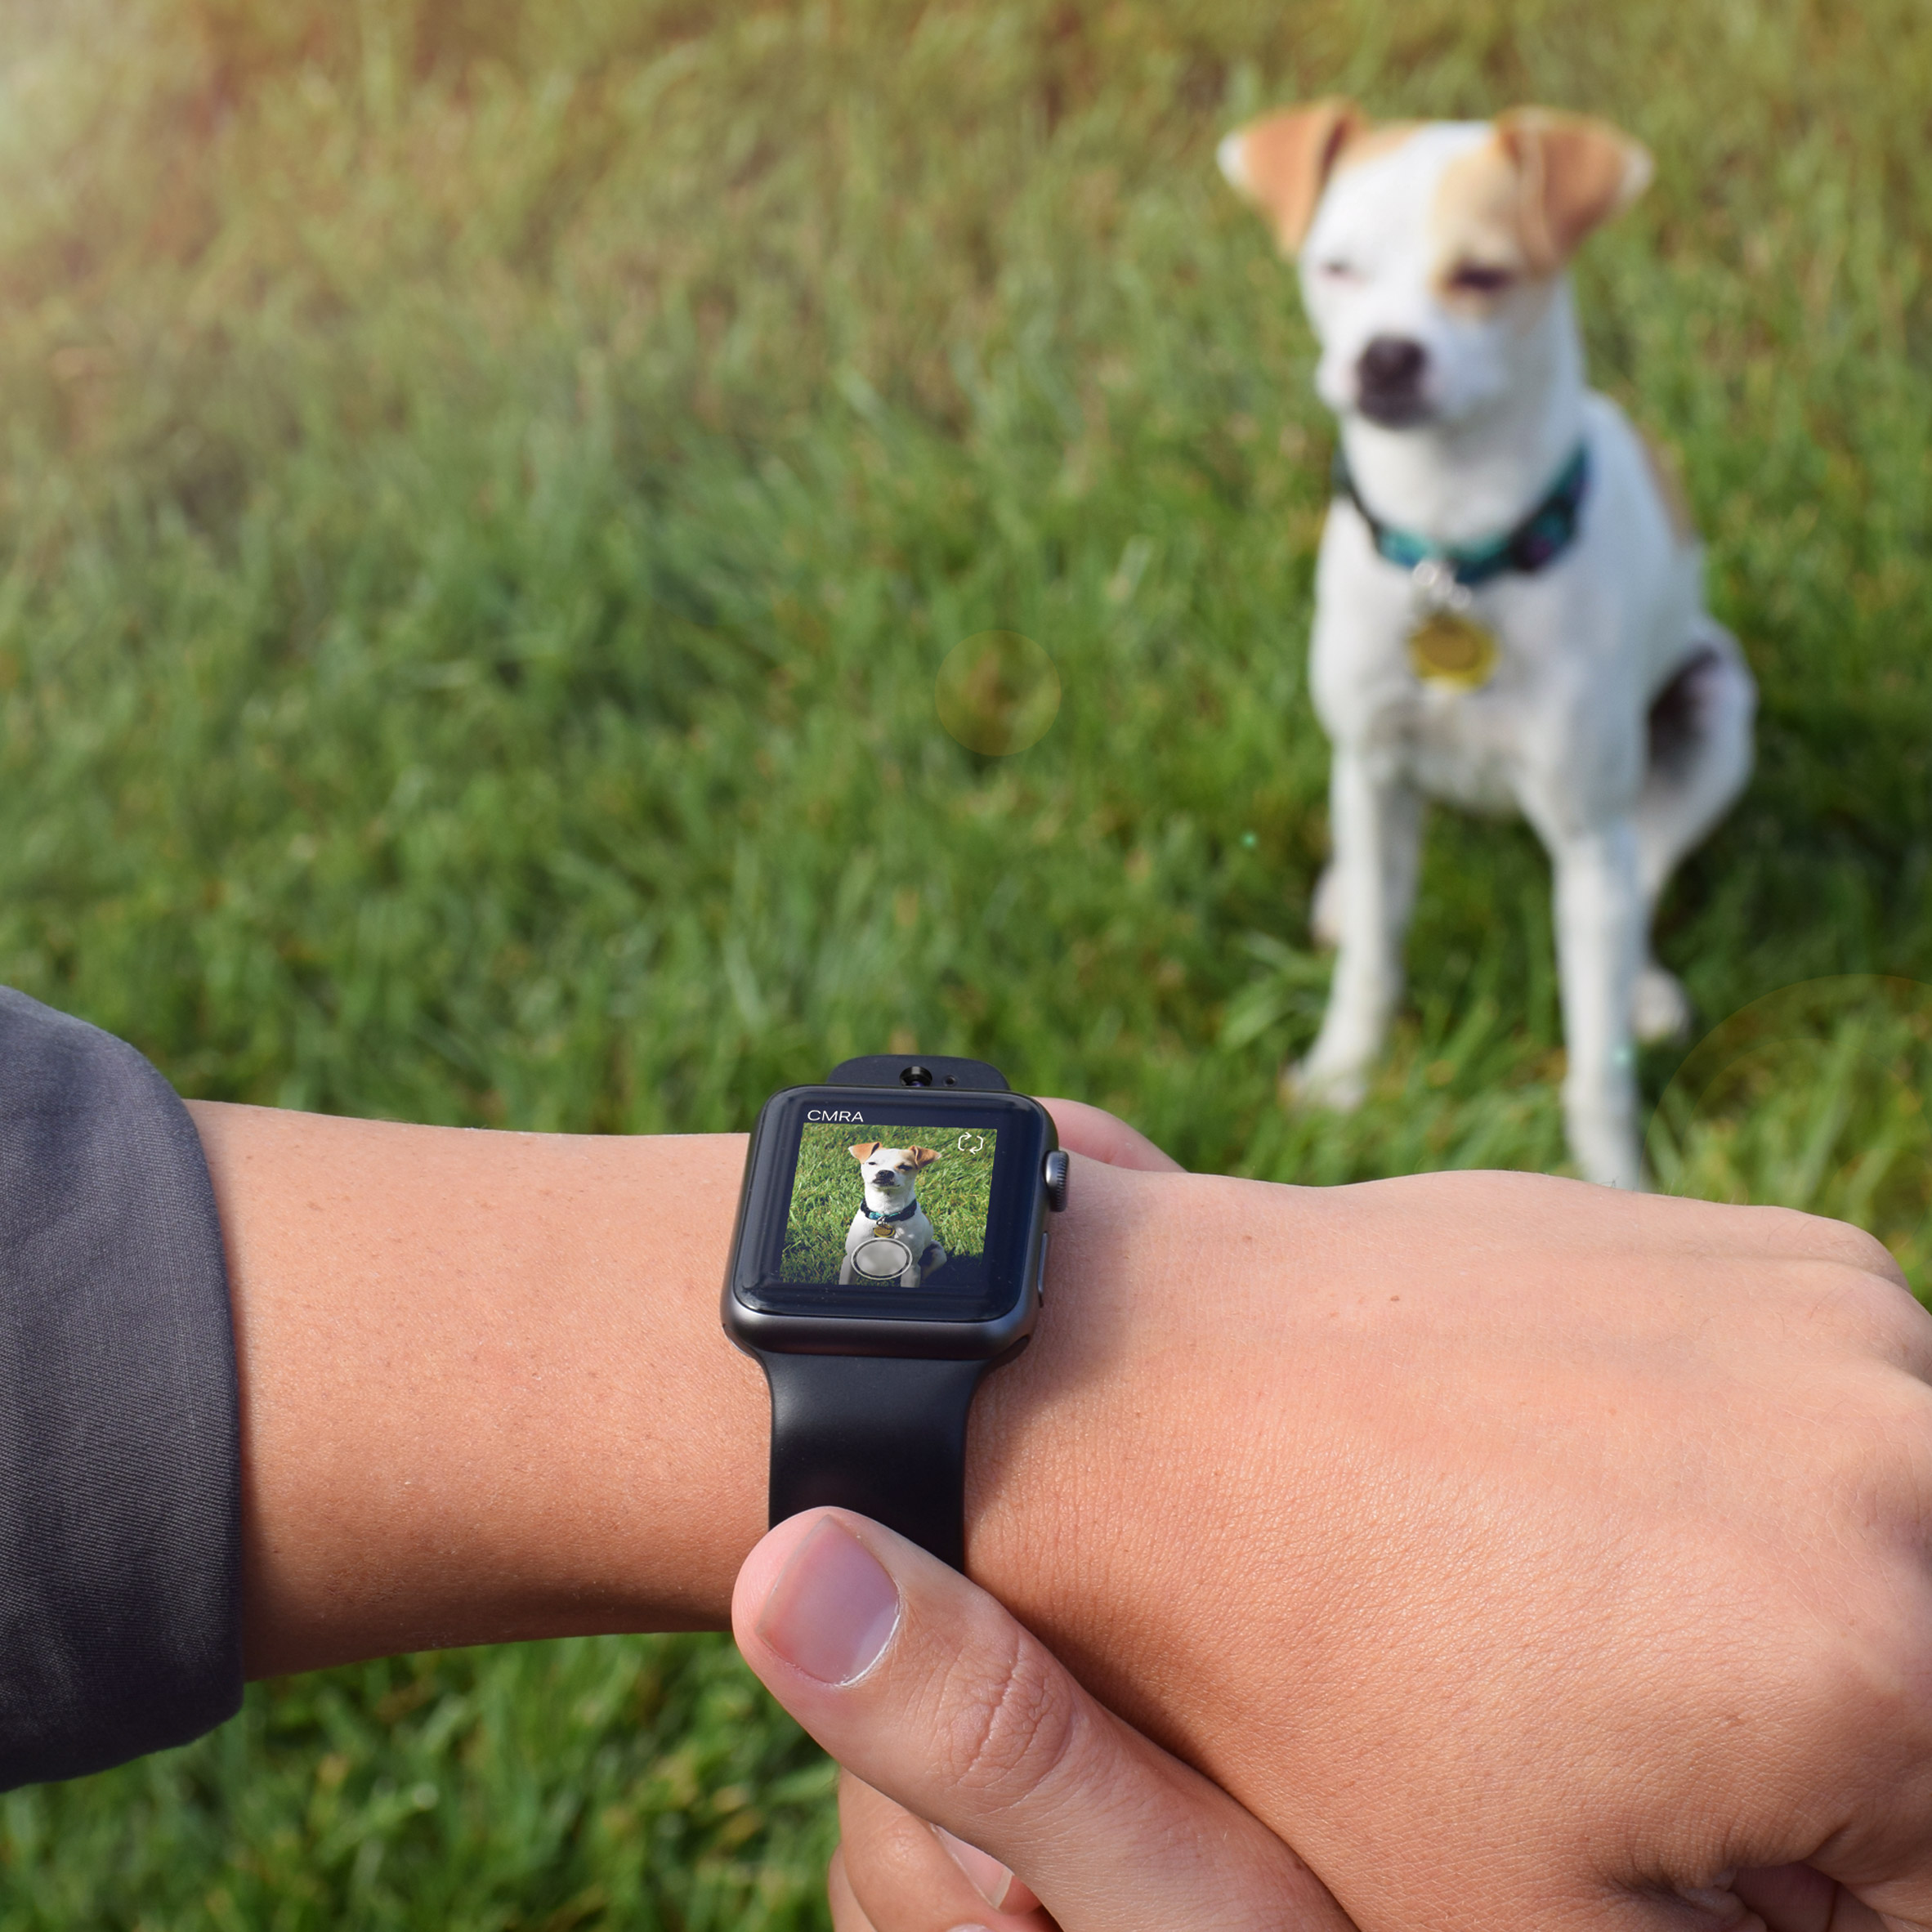 Camera capability comes to Apple Watch with launch of third-party band